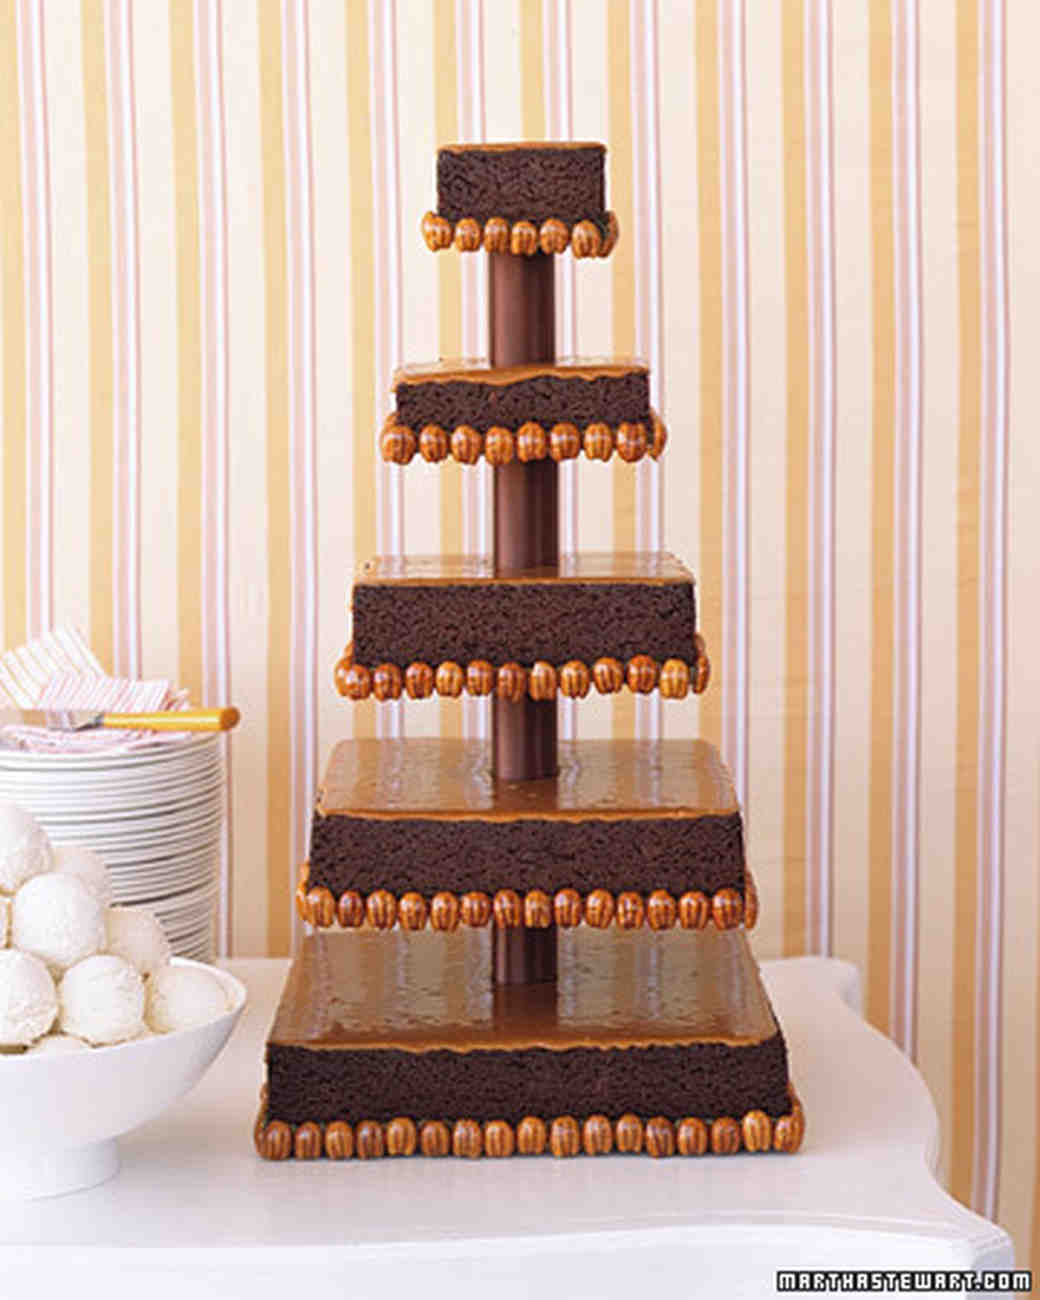 Wedding cakes recipe ideas